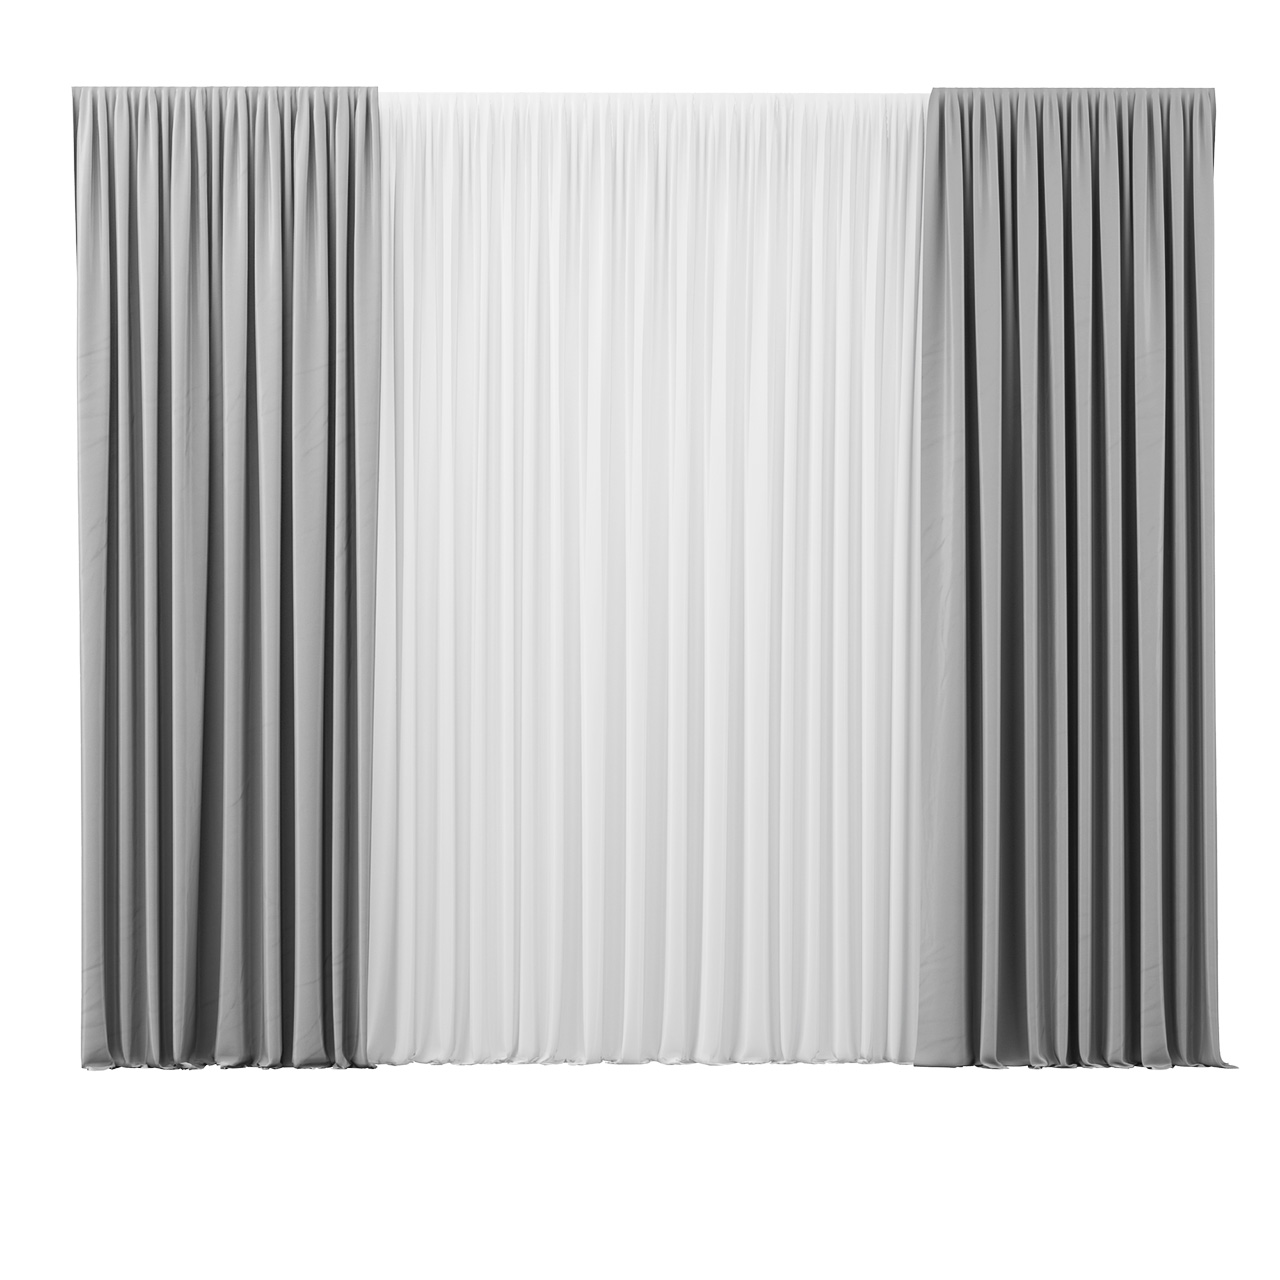 Aida Grey Curtain by Nya Nordiska